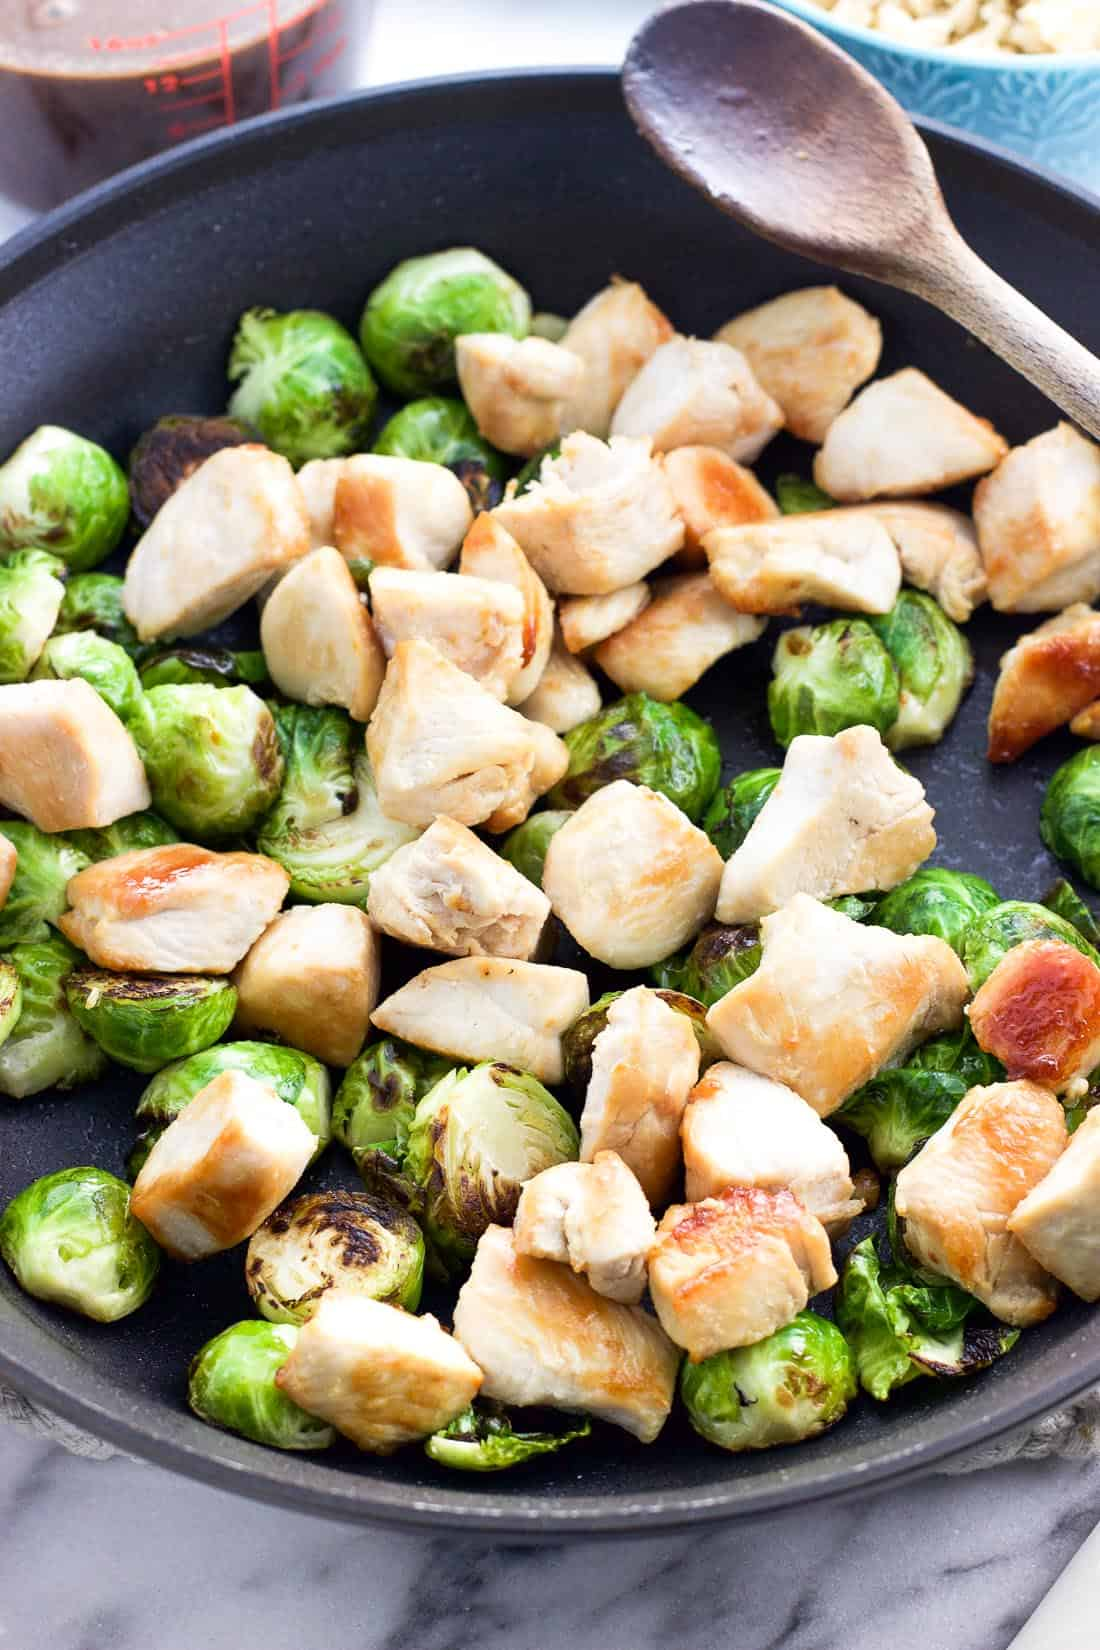 Cooked chicken and sauteed Brussels sprouts in a skillet next to a wooden spoon